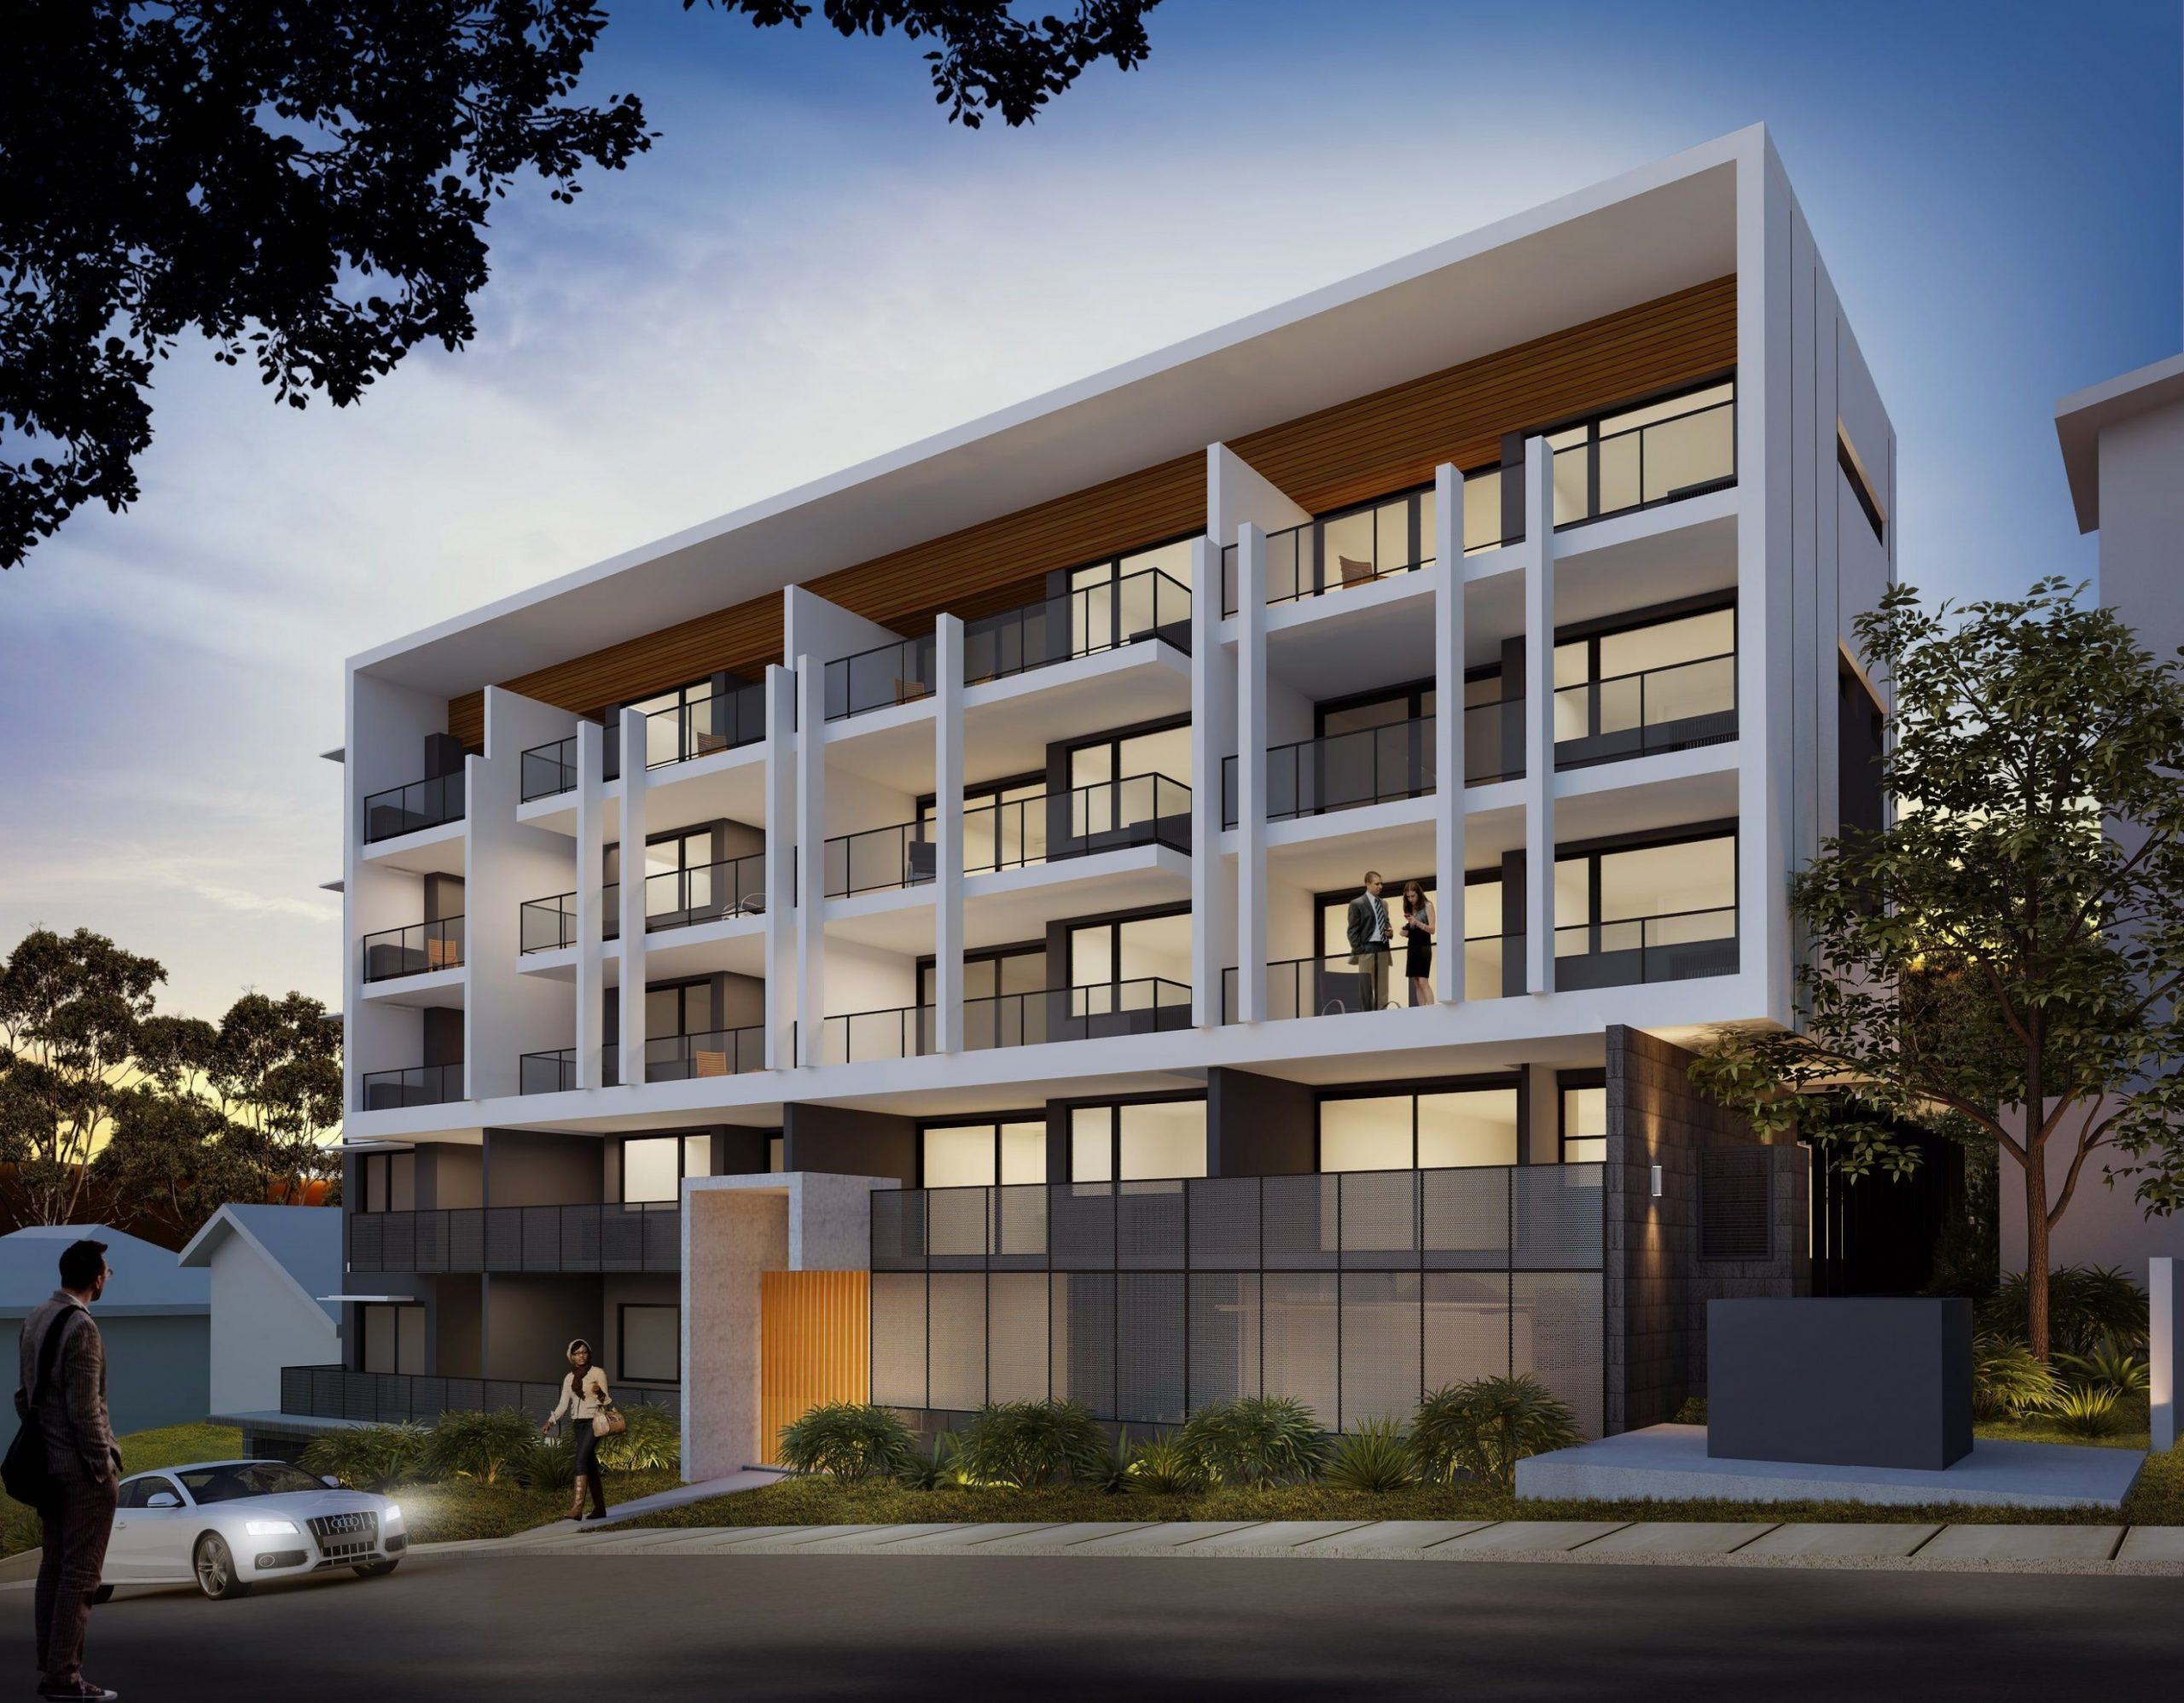 12 Luxury & Brand New 🏡 #Apartments unit for sale in the suburb  - Queensland Apartment Design Guidelines